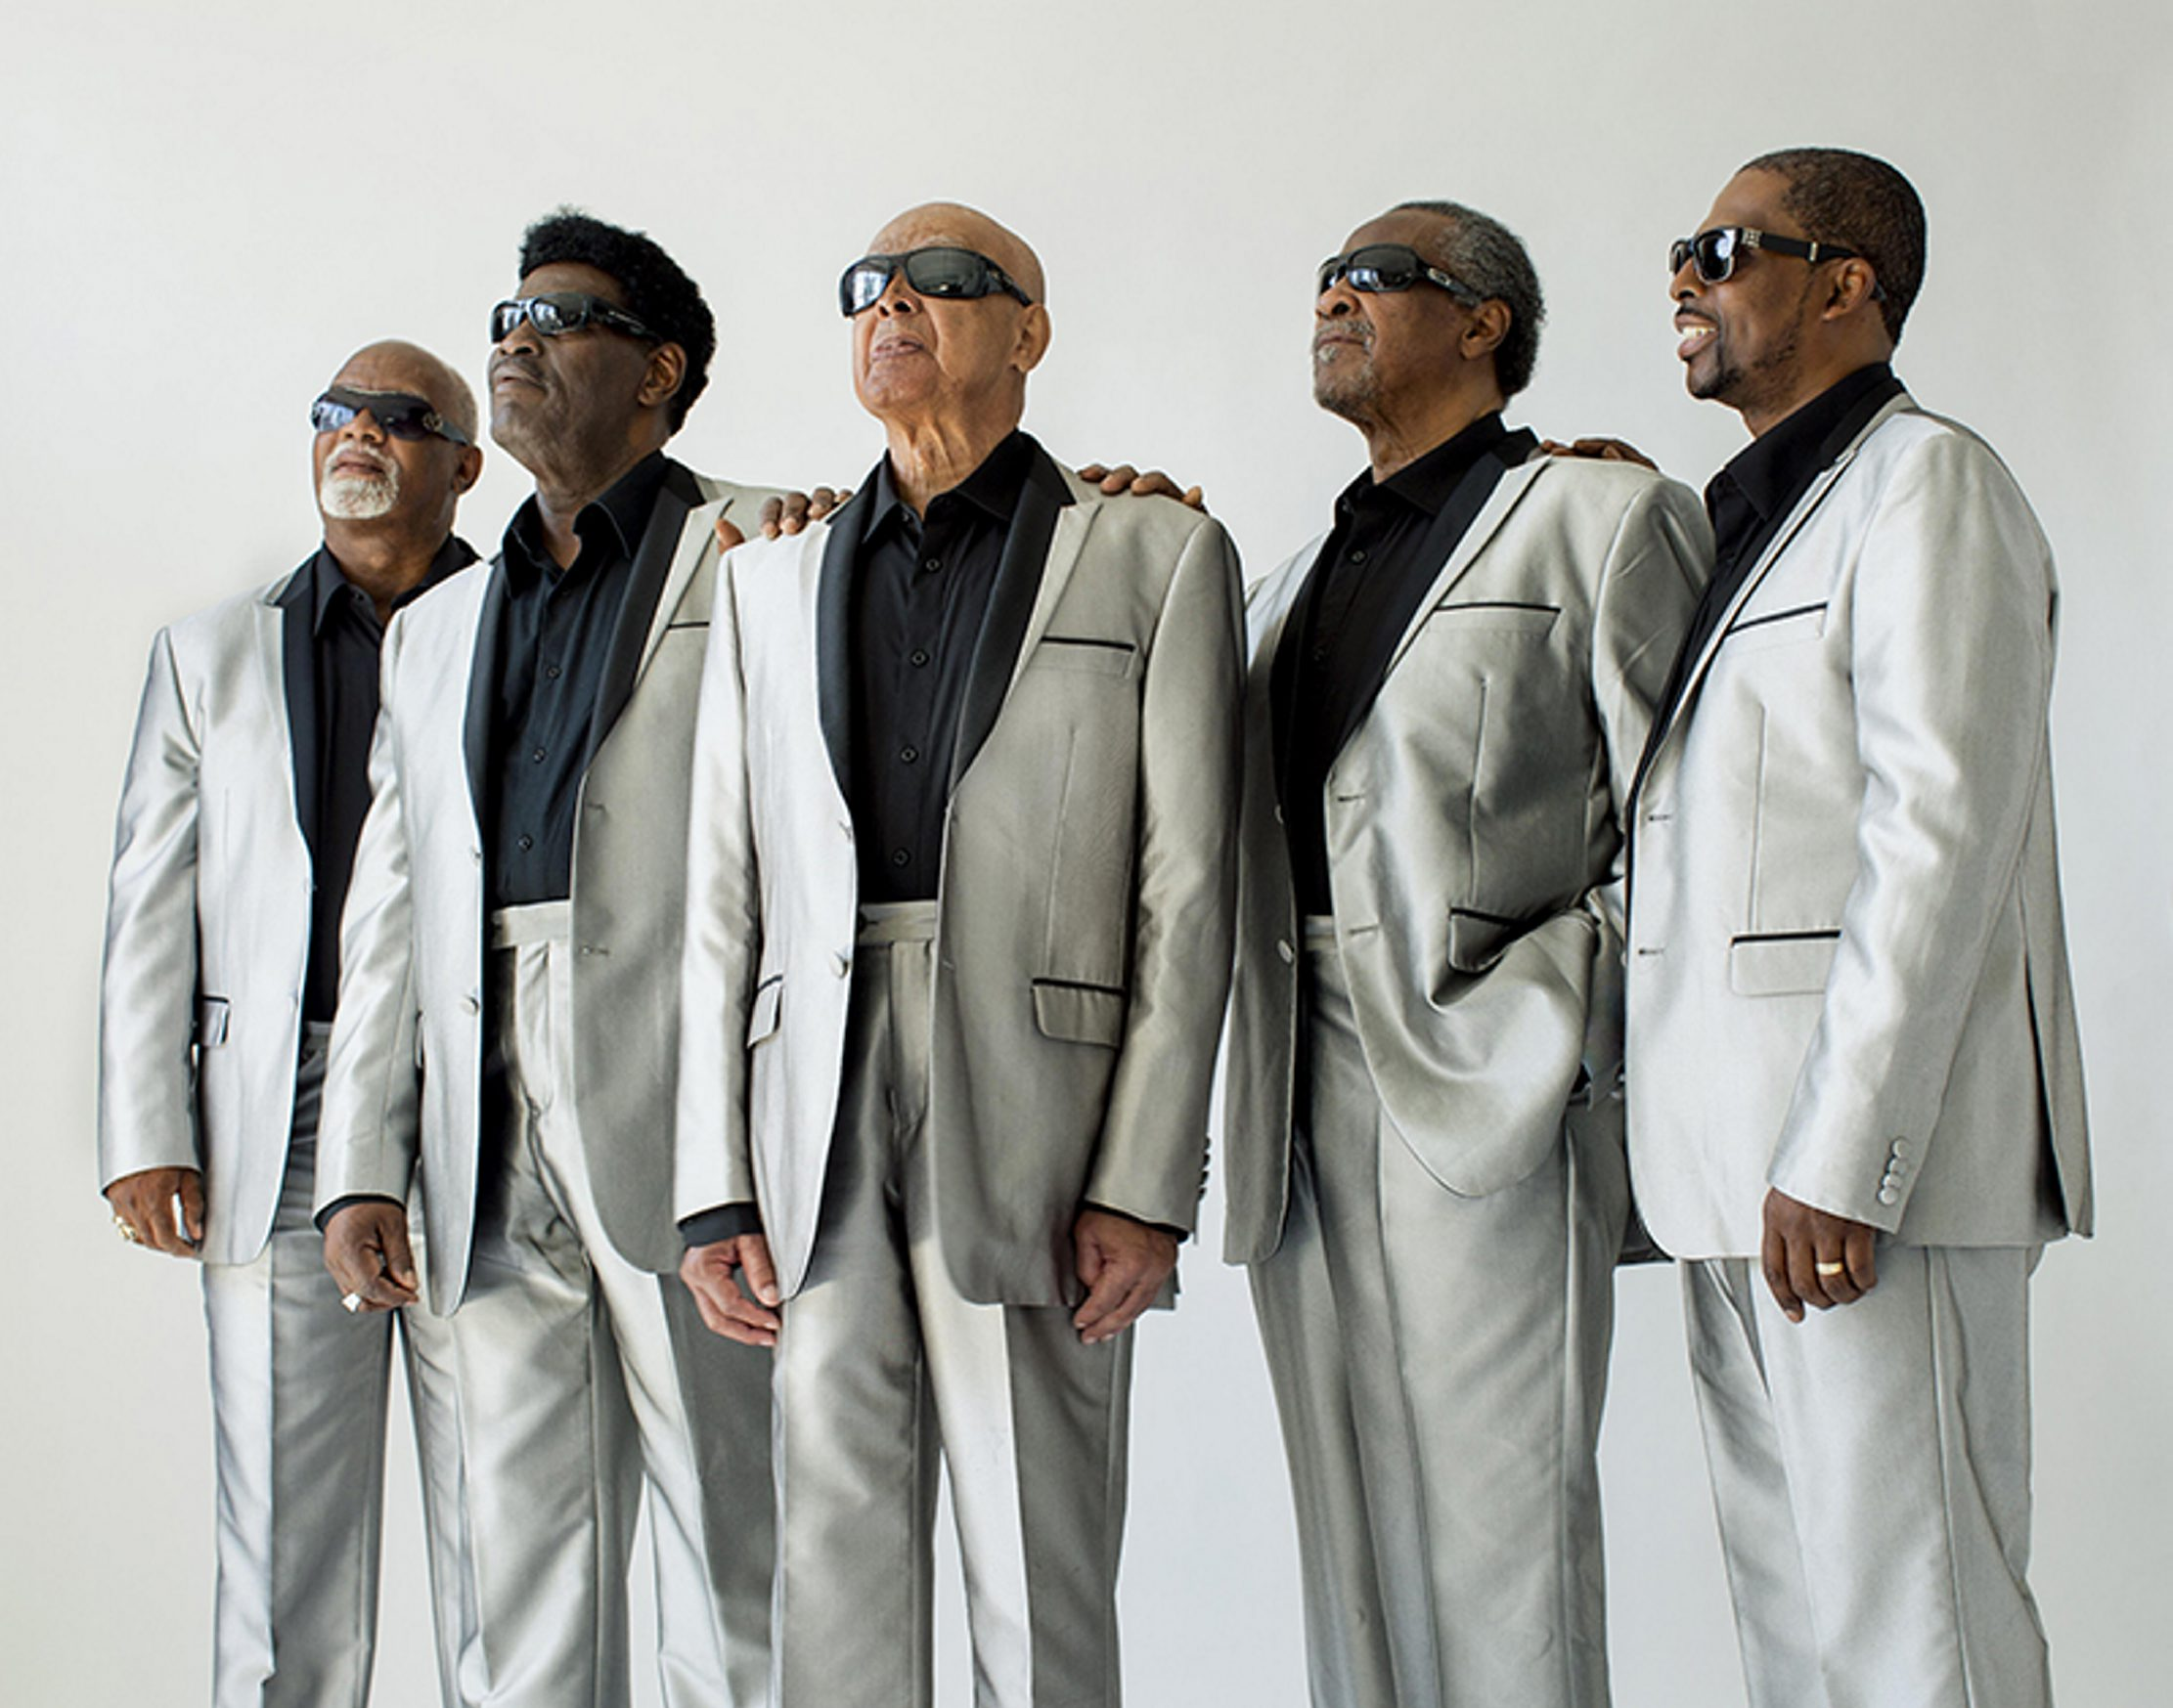 The Blind Boys of Alabama, featuring original member Jimmy Carter, perform Wednesday in the Tralf.